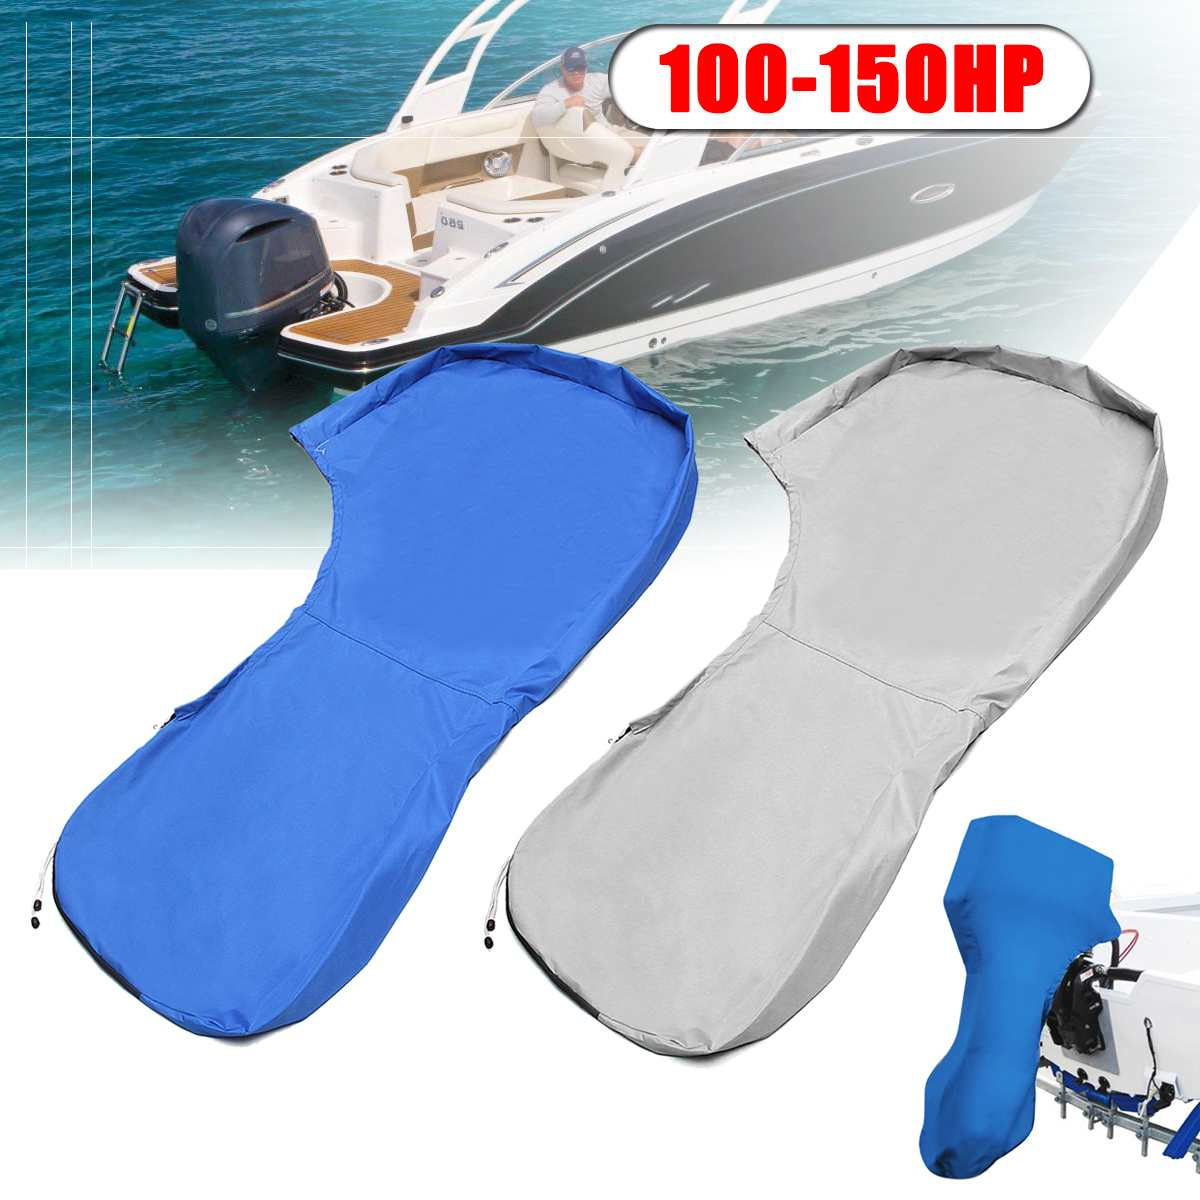 77.56 inch 600D Boat Full <font><b>Outboard</b></font> Engine Motor Cover for 100-<font><b>150HP</b></font> Hose Power Waterproof image